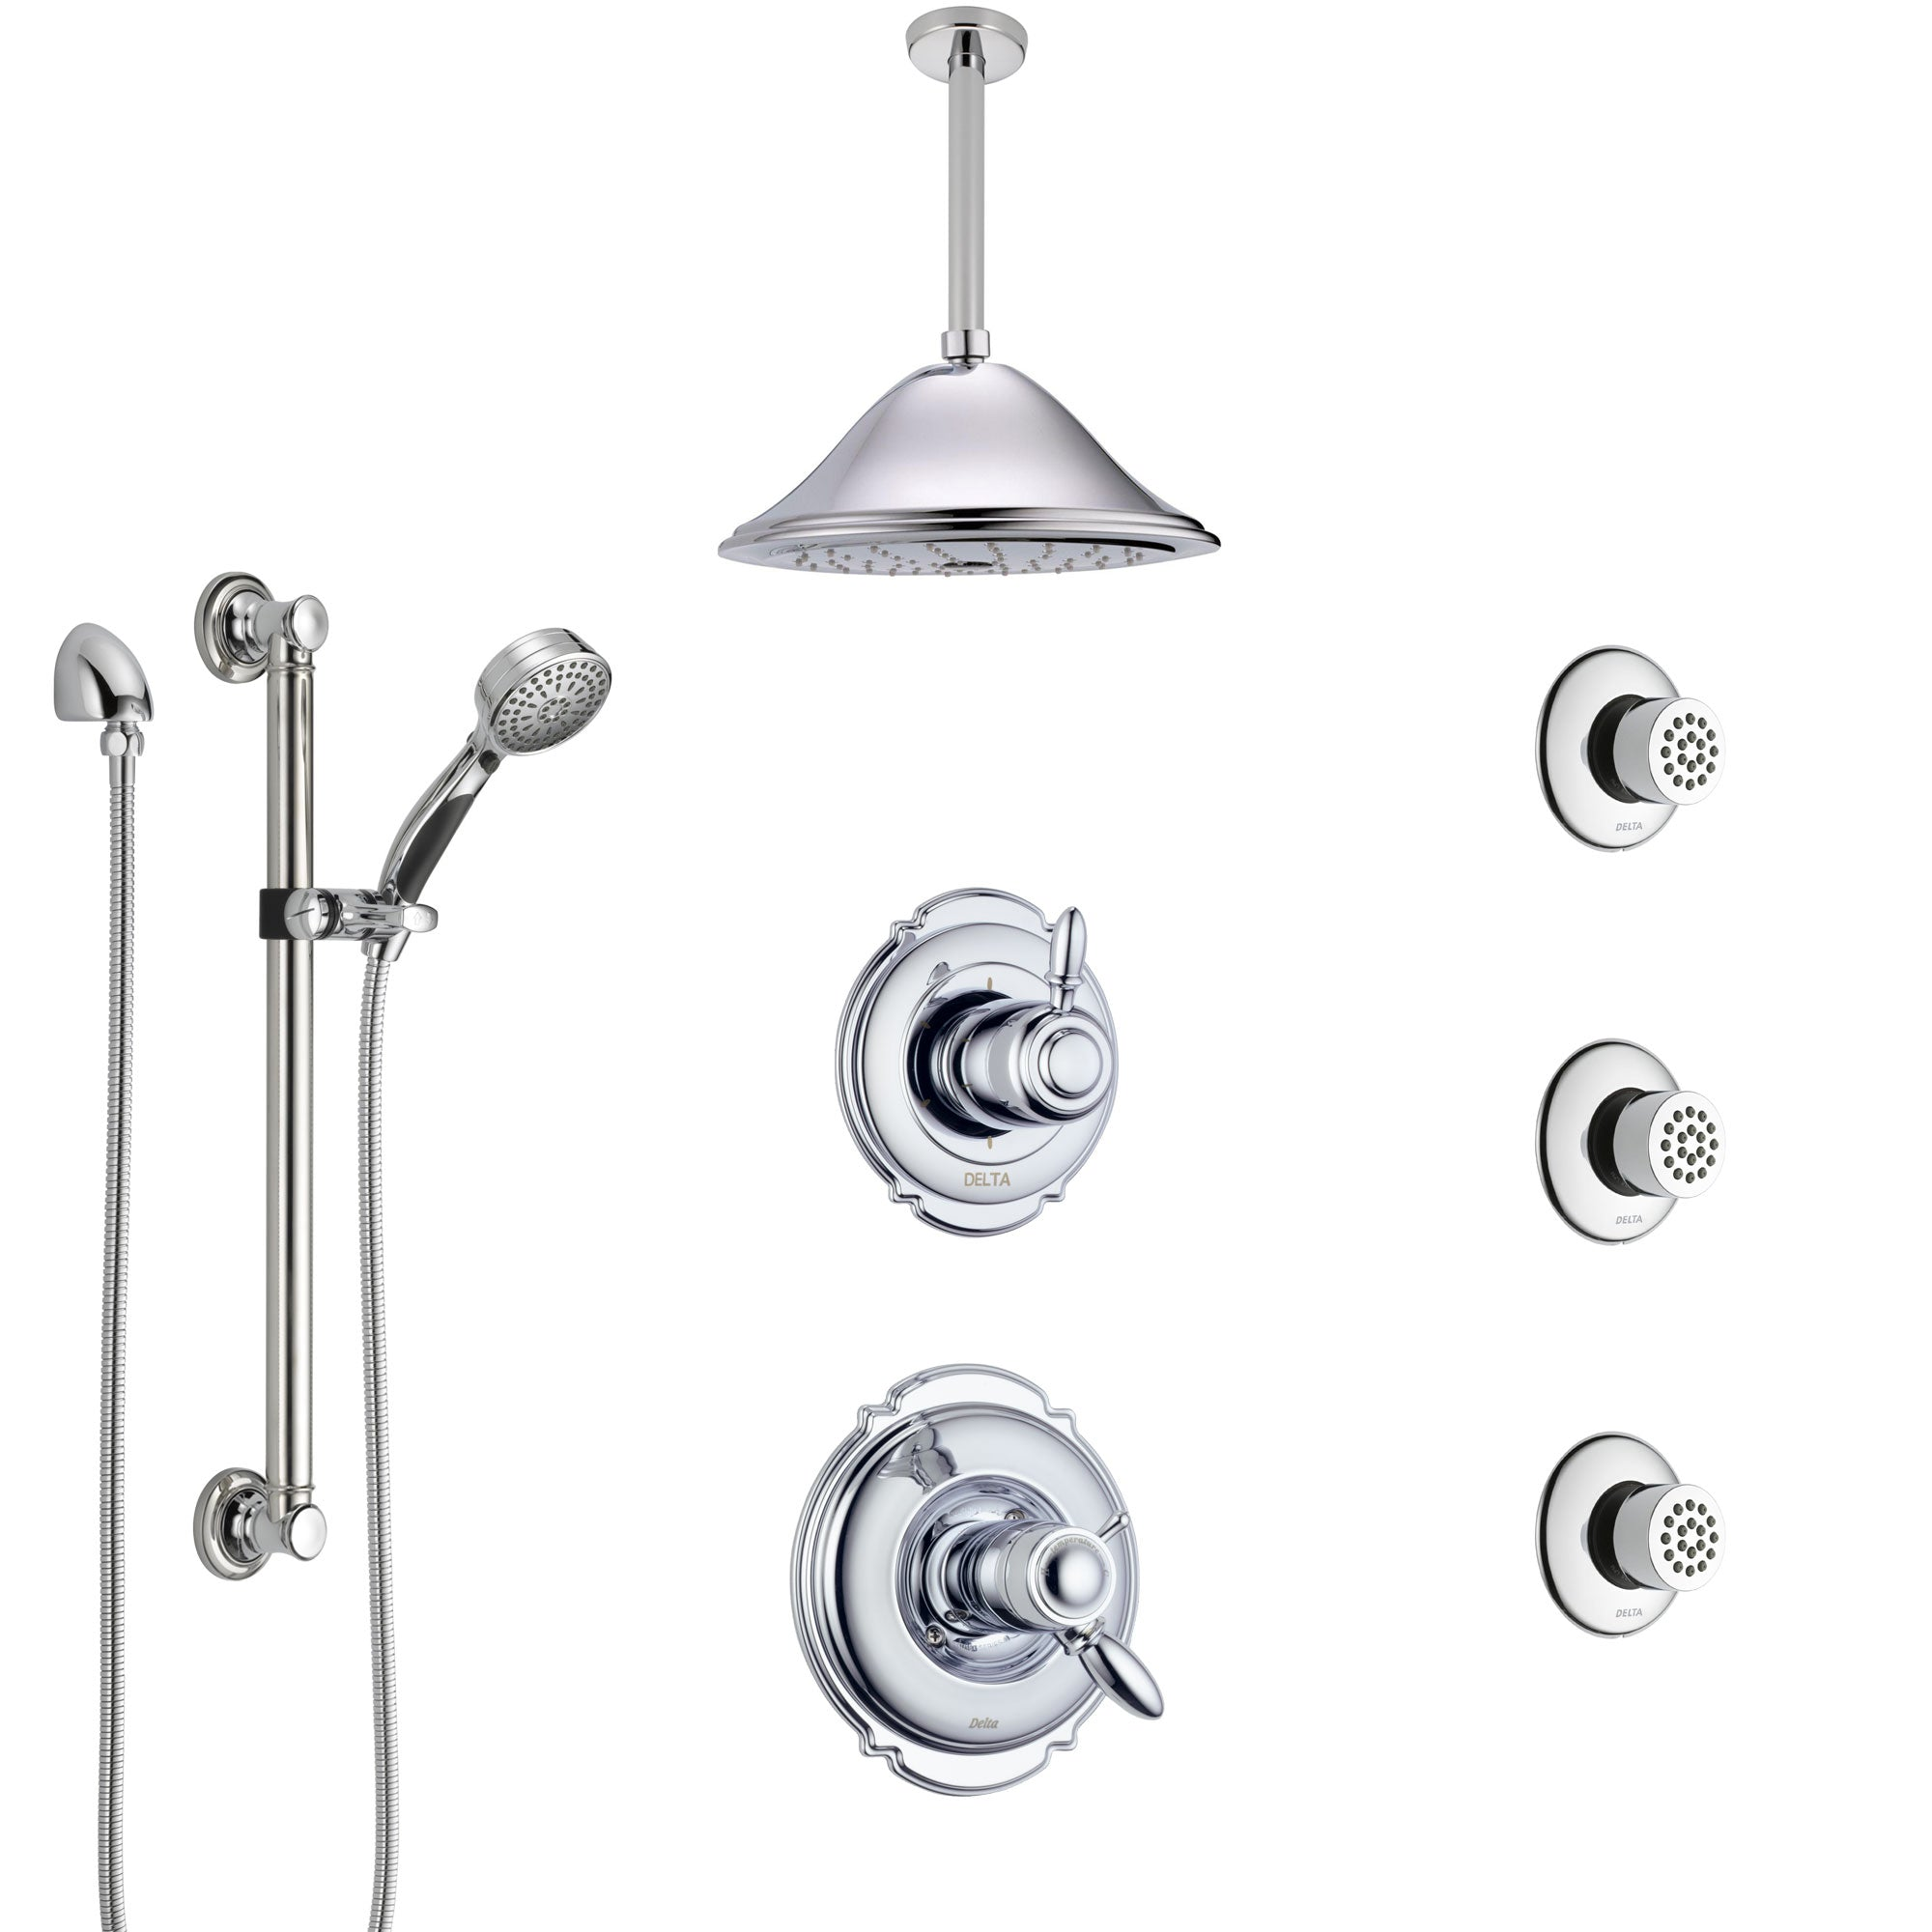 Delta Victorian Chrome Shower System with Dual Thermostatic Control, Diverter, Ceiling Showerhead, 3 Body Sprays, and Grab Bar Hand Shower SS17T5527